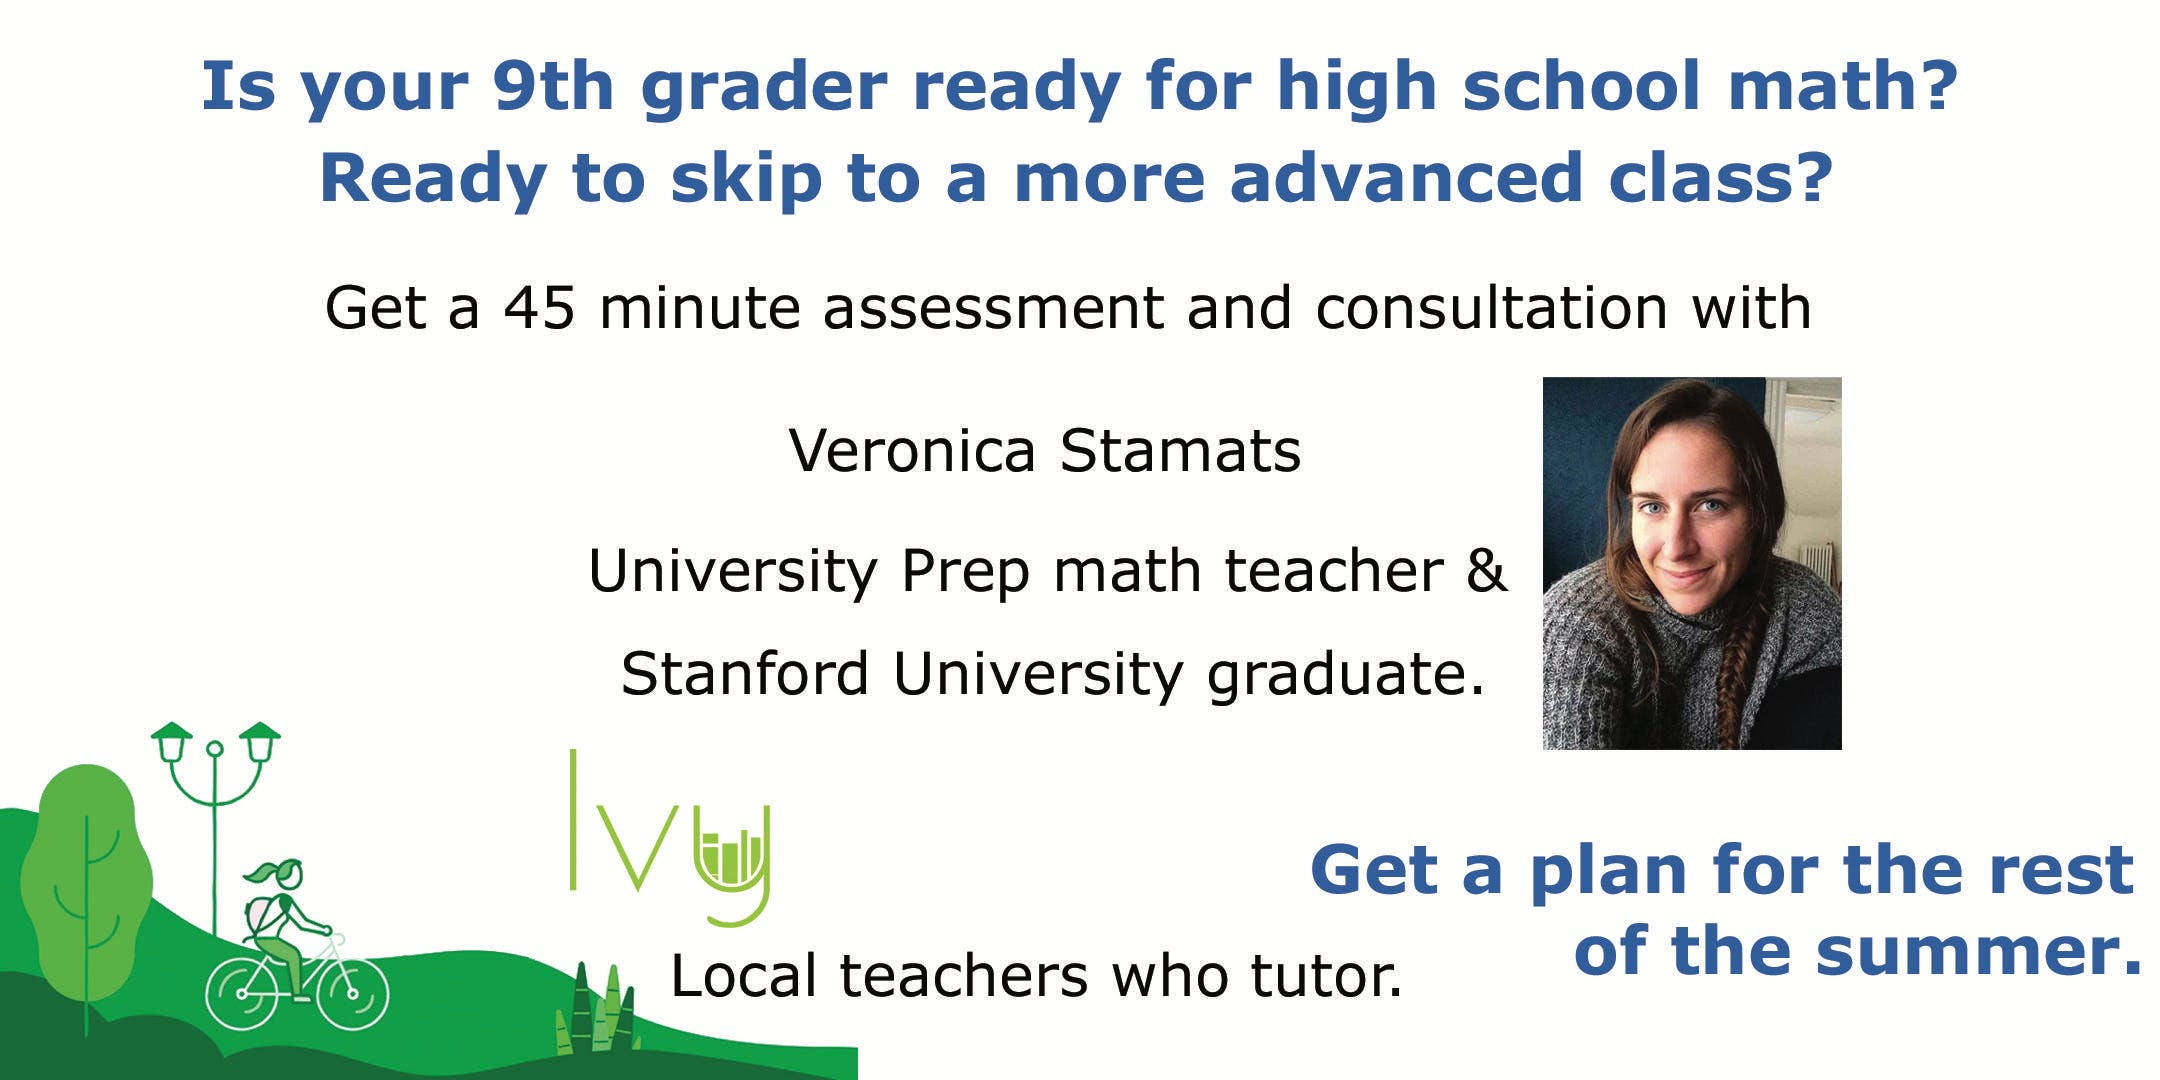 Is Your 9th Grader Ready For High School Math 21 Jul 2018